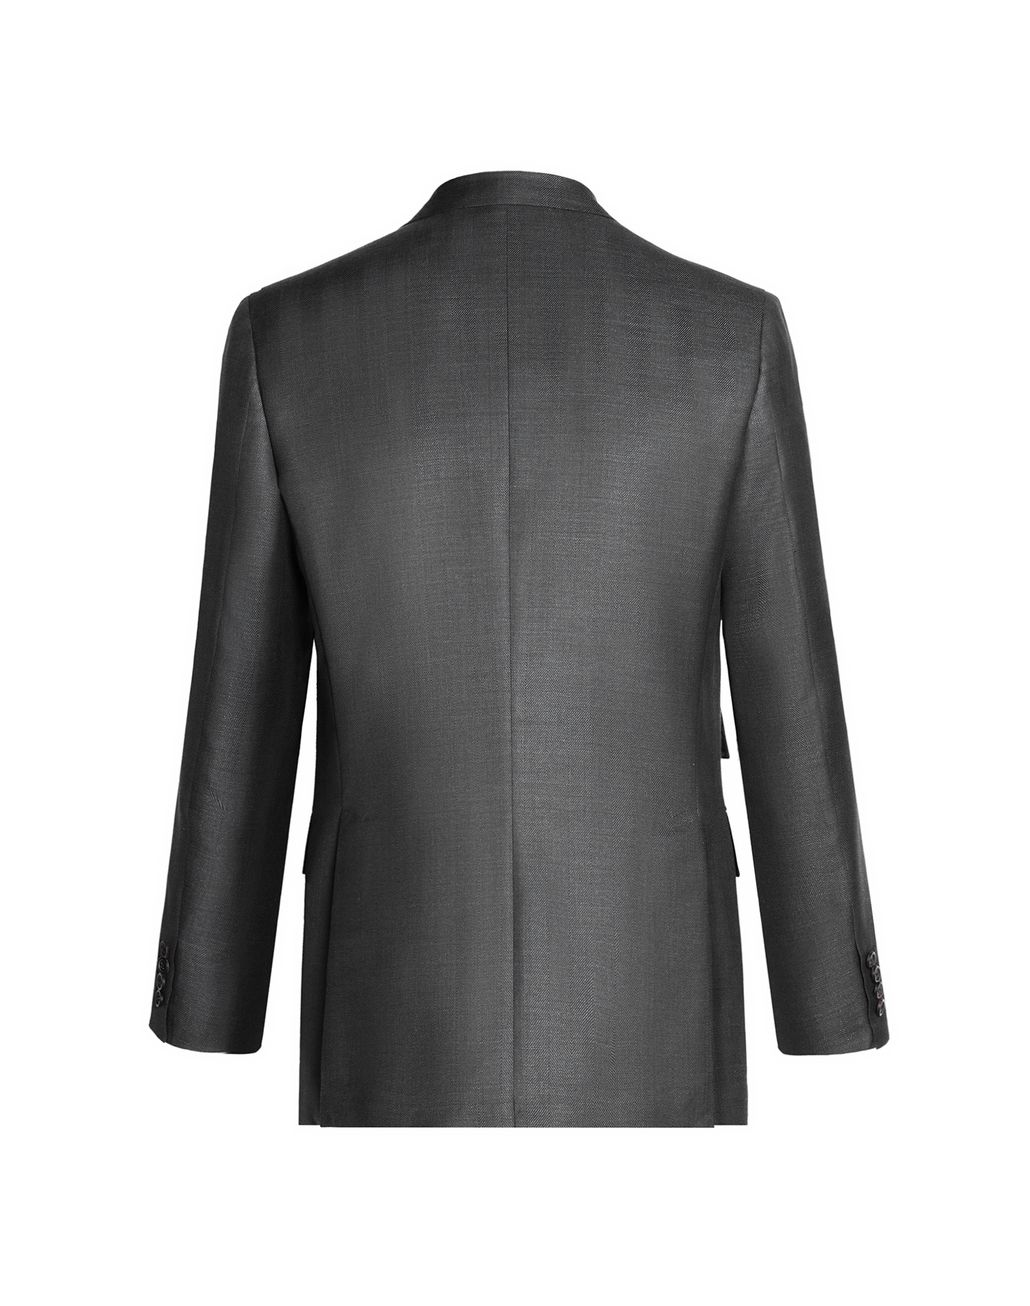 BRIONI Grey Herringbone F-Light Unlined Jacket Jackets U r